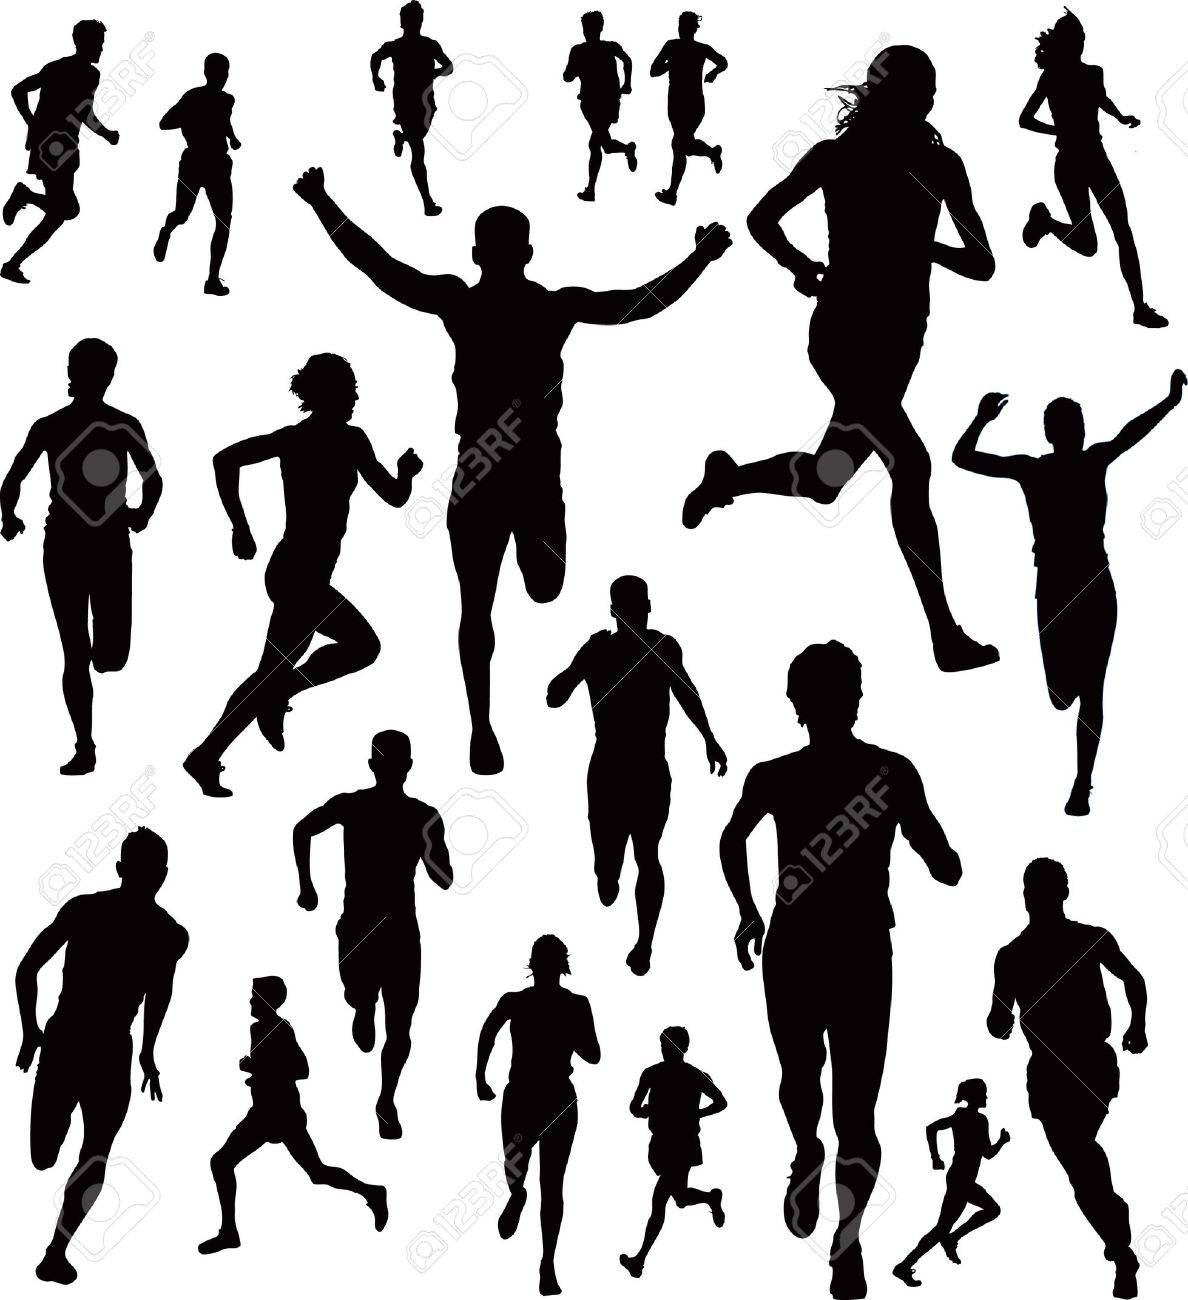 Cross country running clipart black and white images free ...